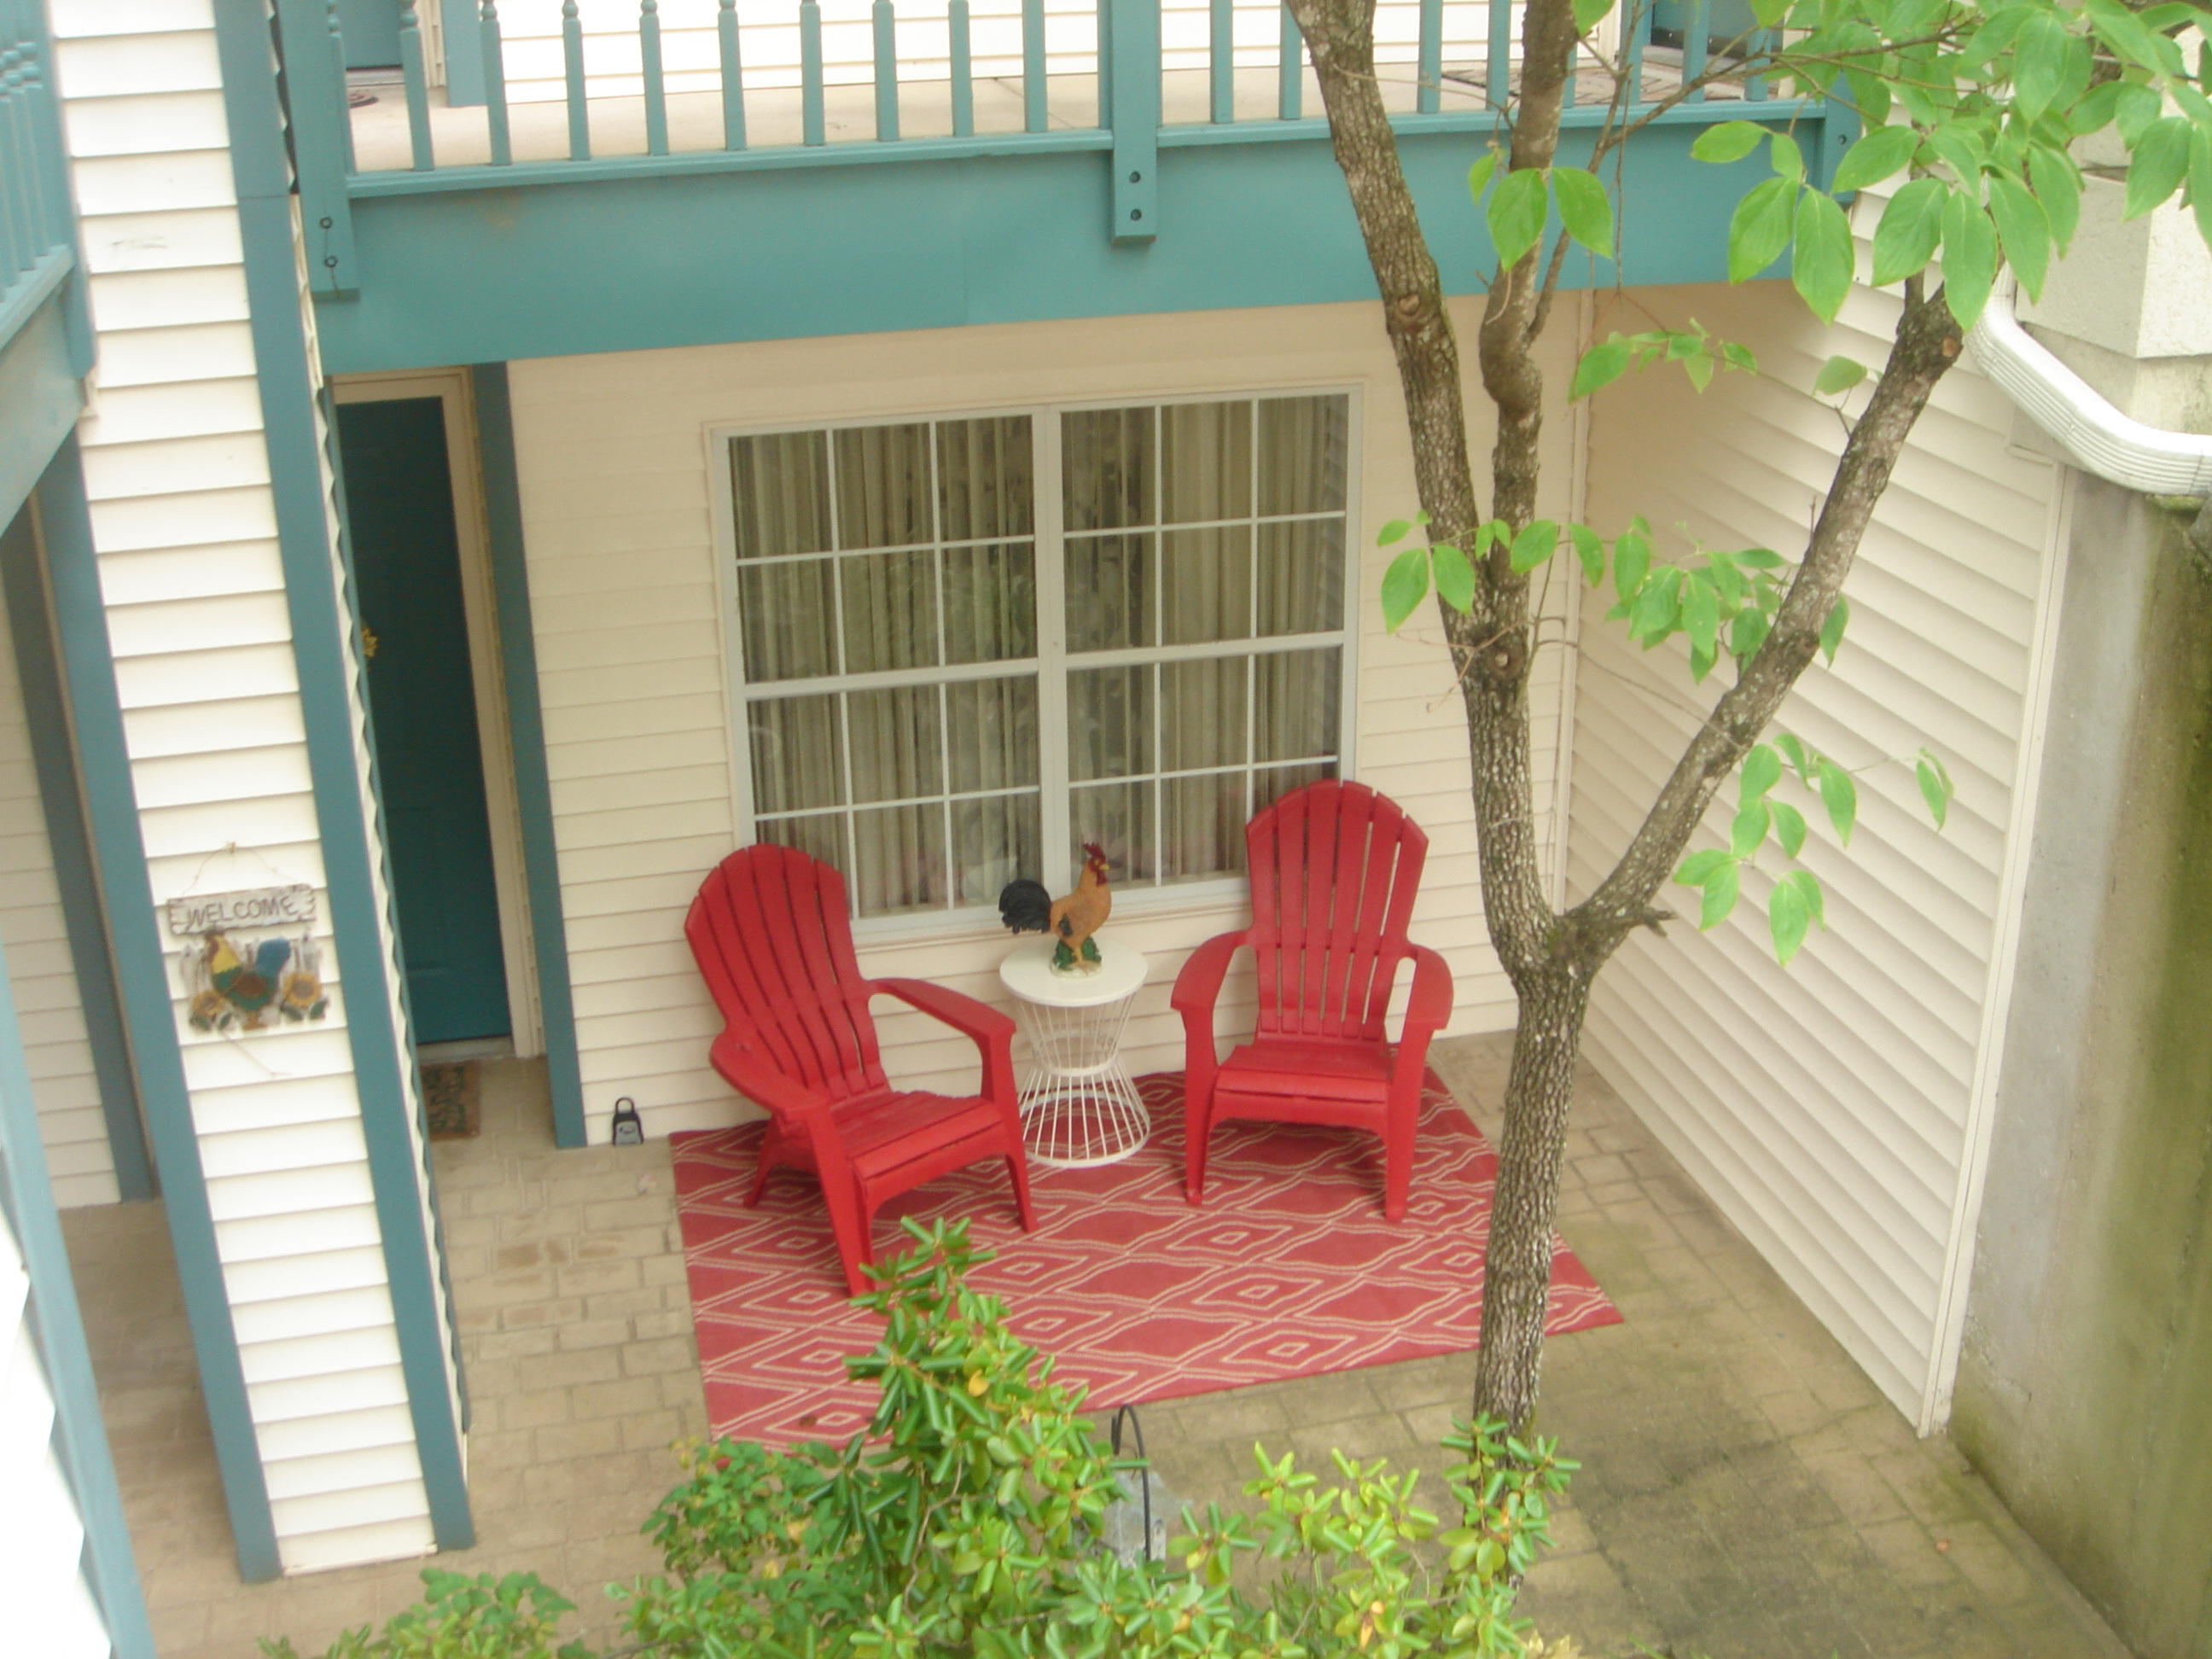 127 The Bluffs #1 Branson, MO 65616